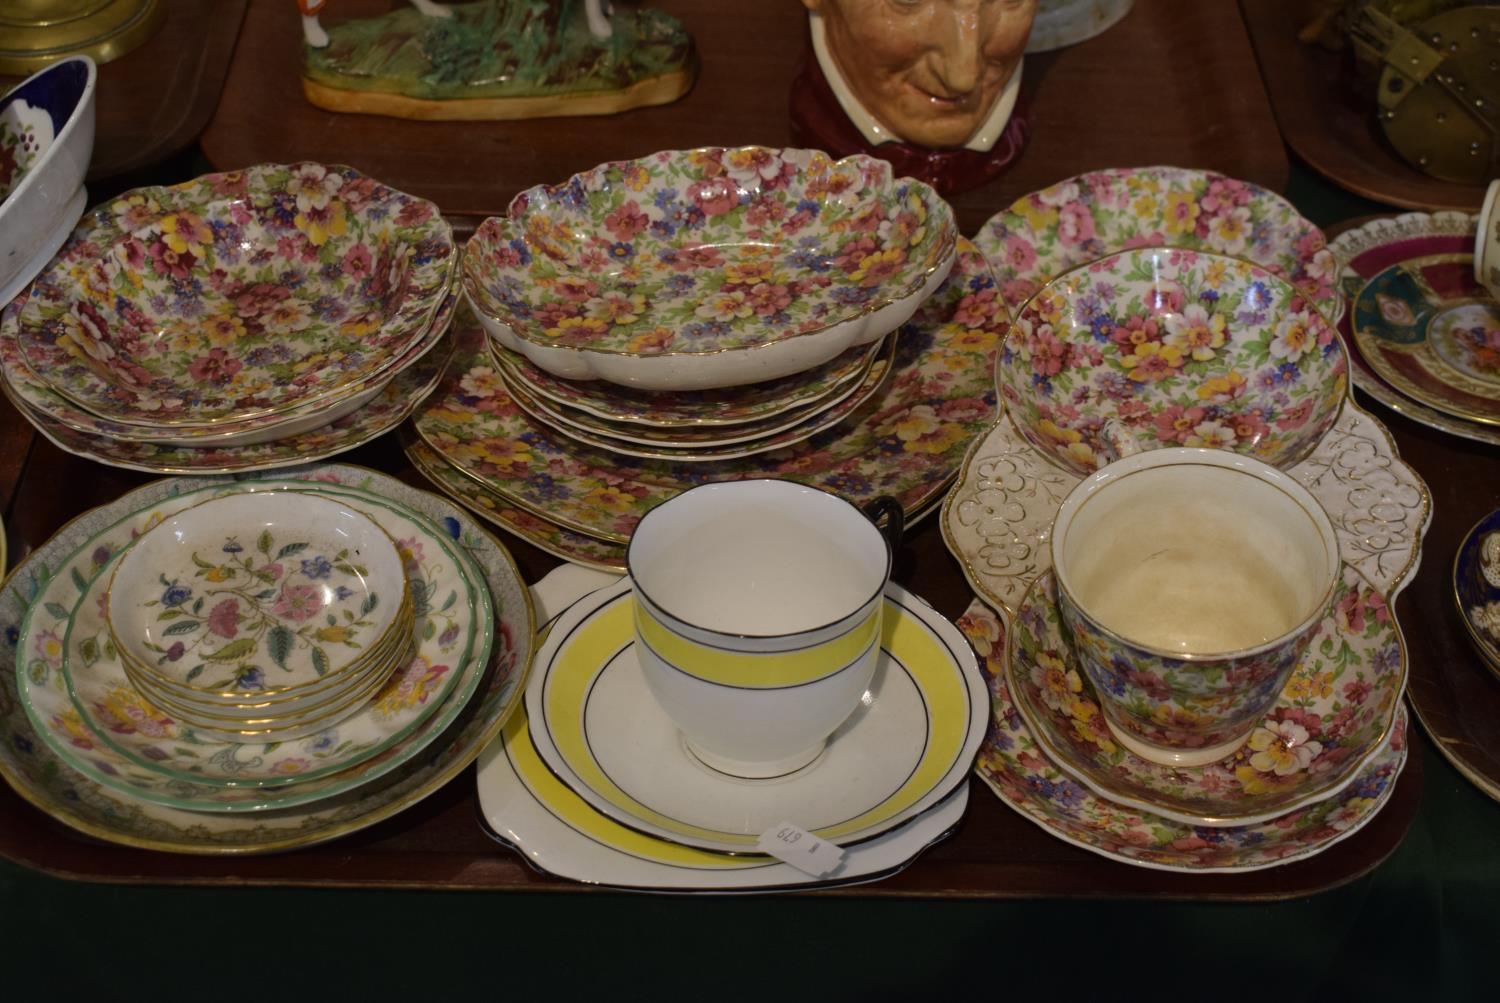 Lot 178 - A Tray Containing Various James Kent Chintz Ware, Minton Pin Dishes etc